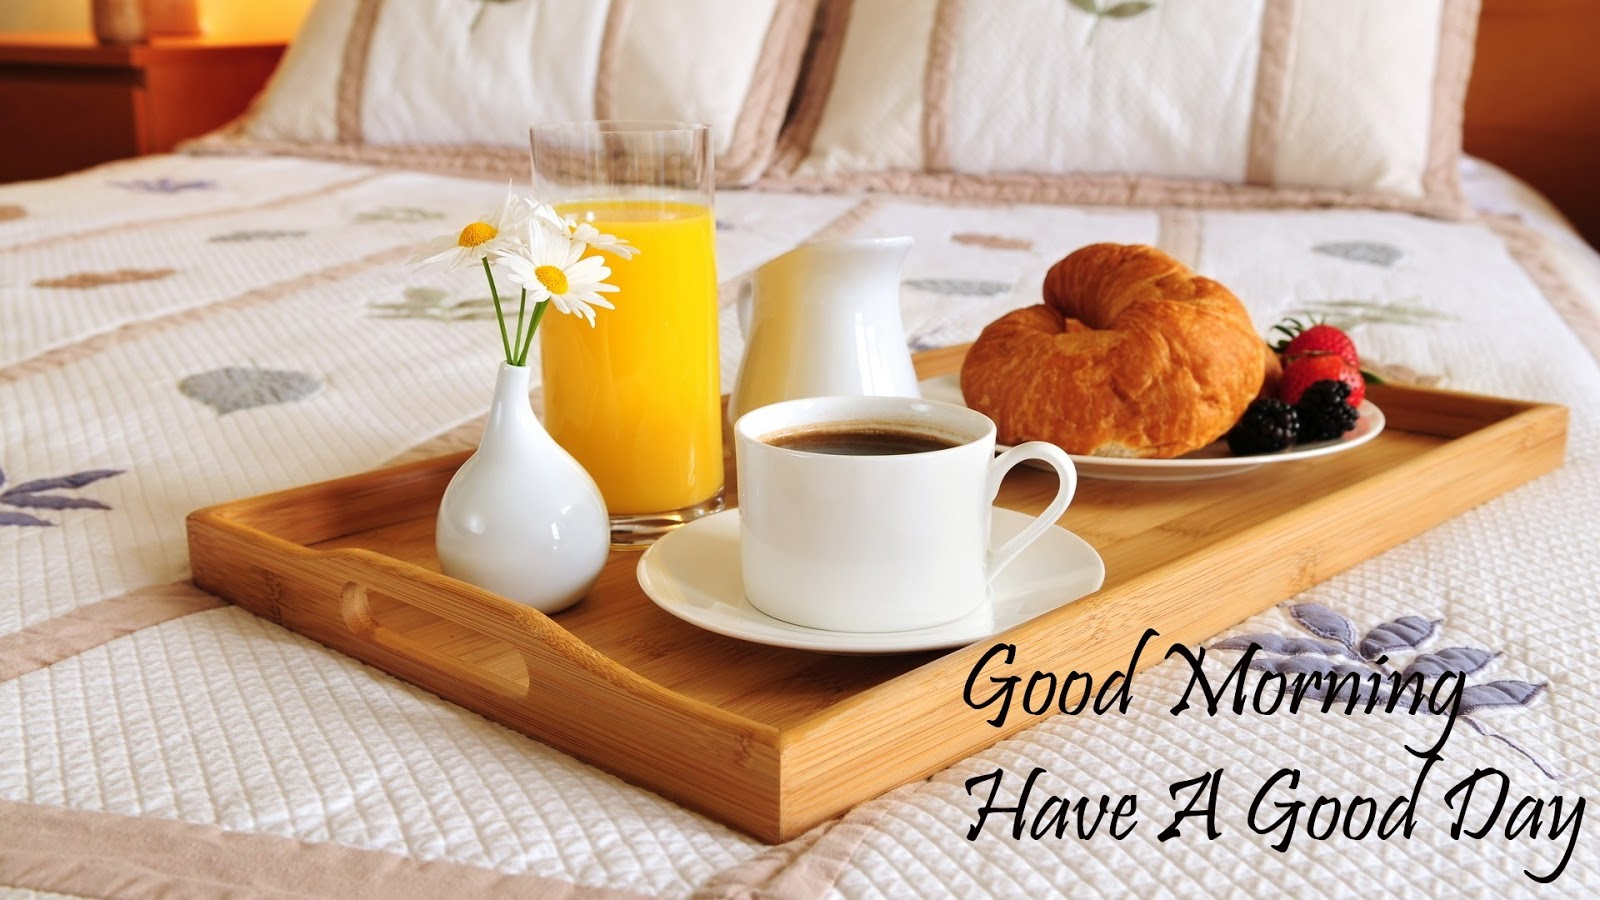 Good Morning HD Download